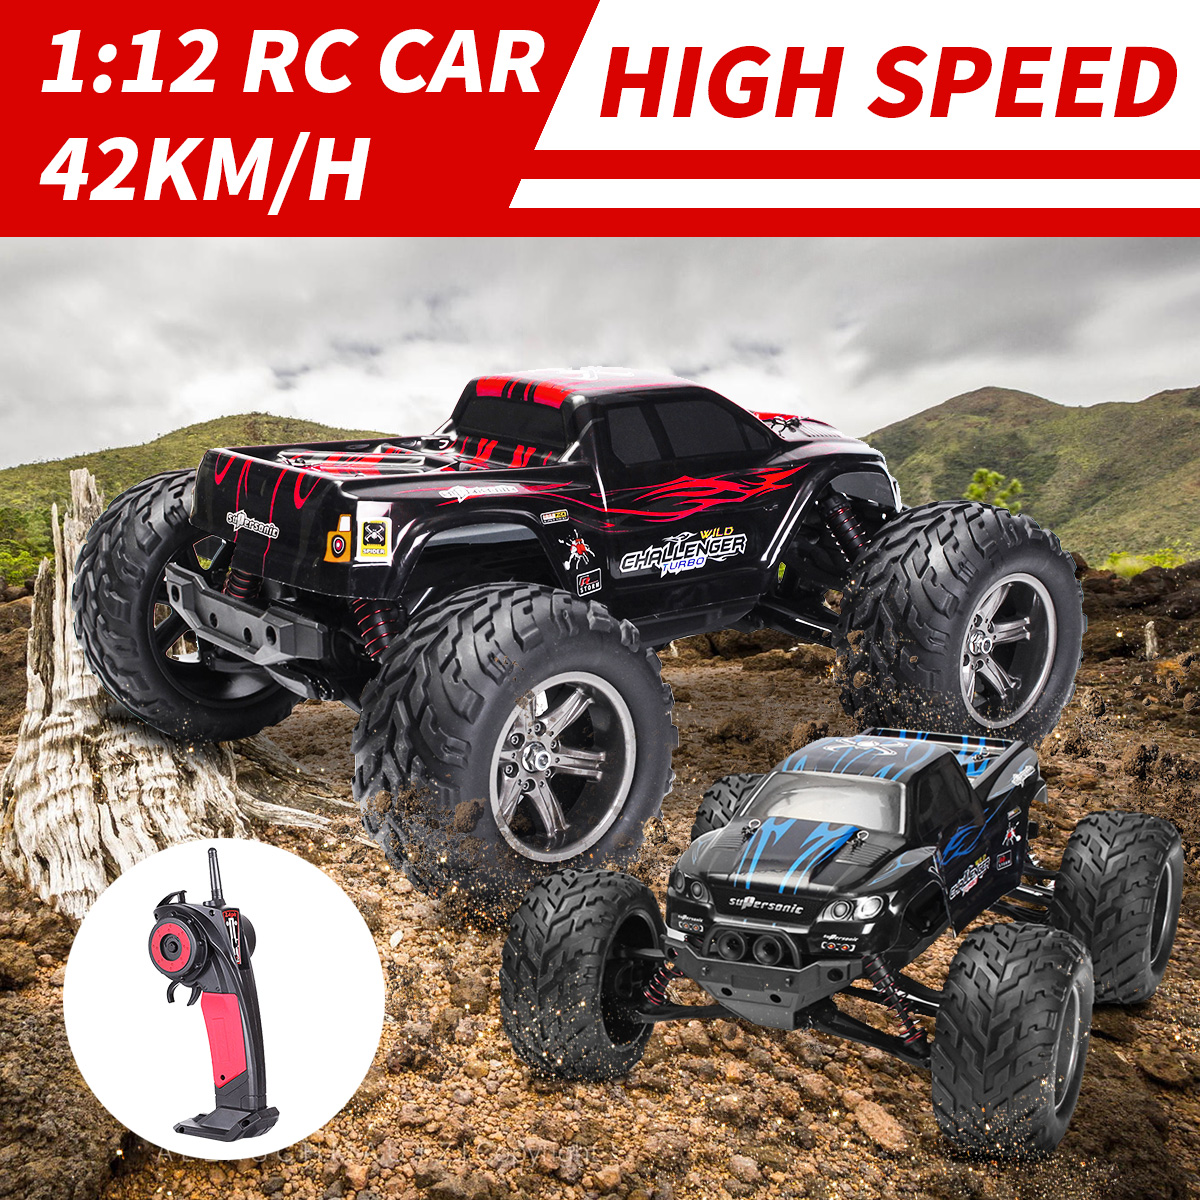 2.4GHz Radio Remote Control RC Cars 42KM/H High Speed Racing Car Climbing RC Electric Toys Car Off Road Truck 1:12 RC Drift Cars 1 24 4wd high speed rc racing car bg1510 rc climber crawler electric drift car remote control cars buggy off road racing model